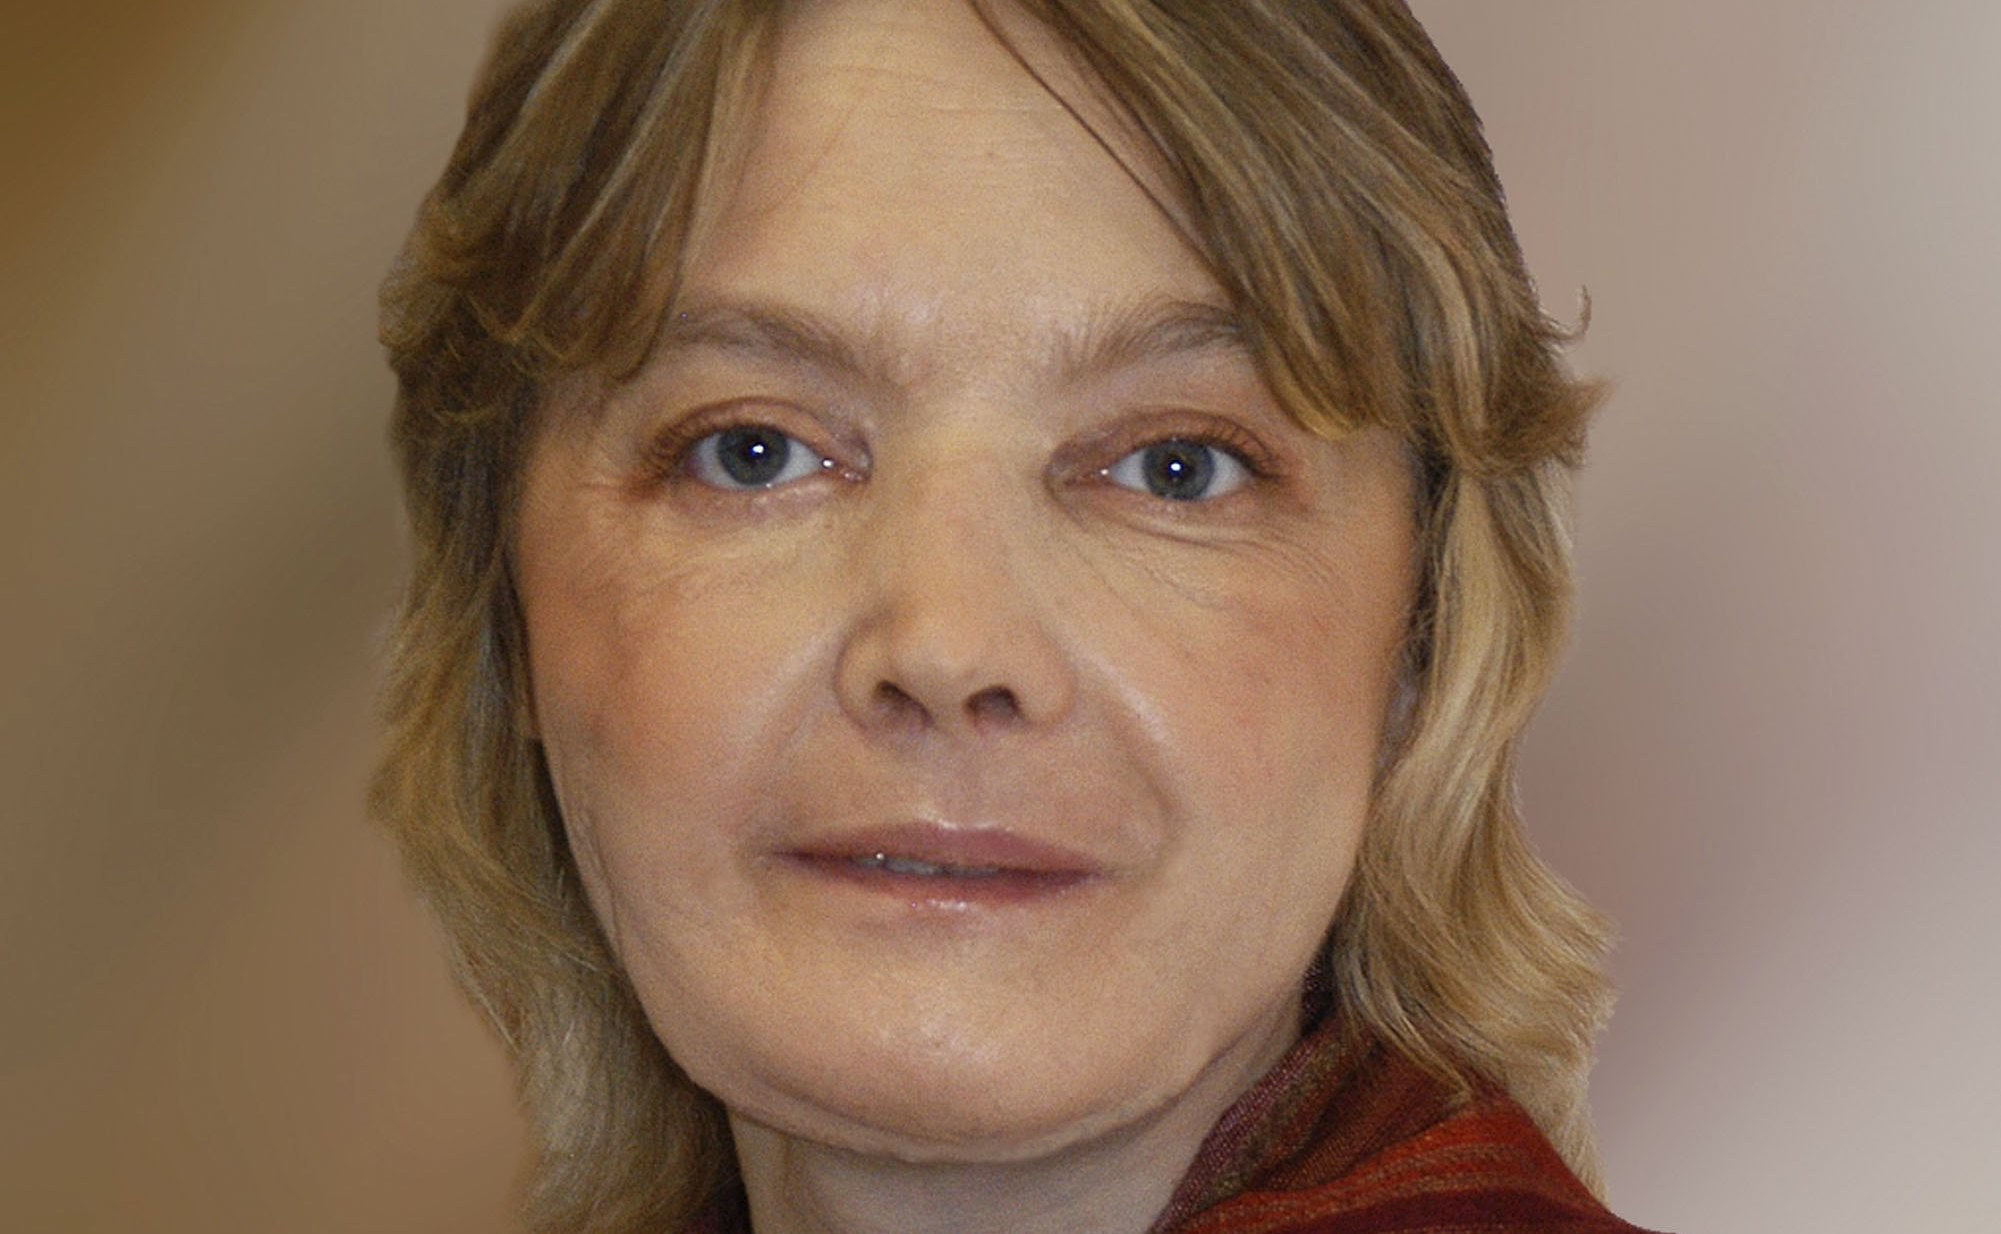 Shine Remarkable facial first transplant world have hit